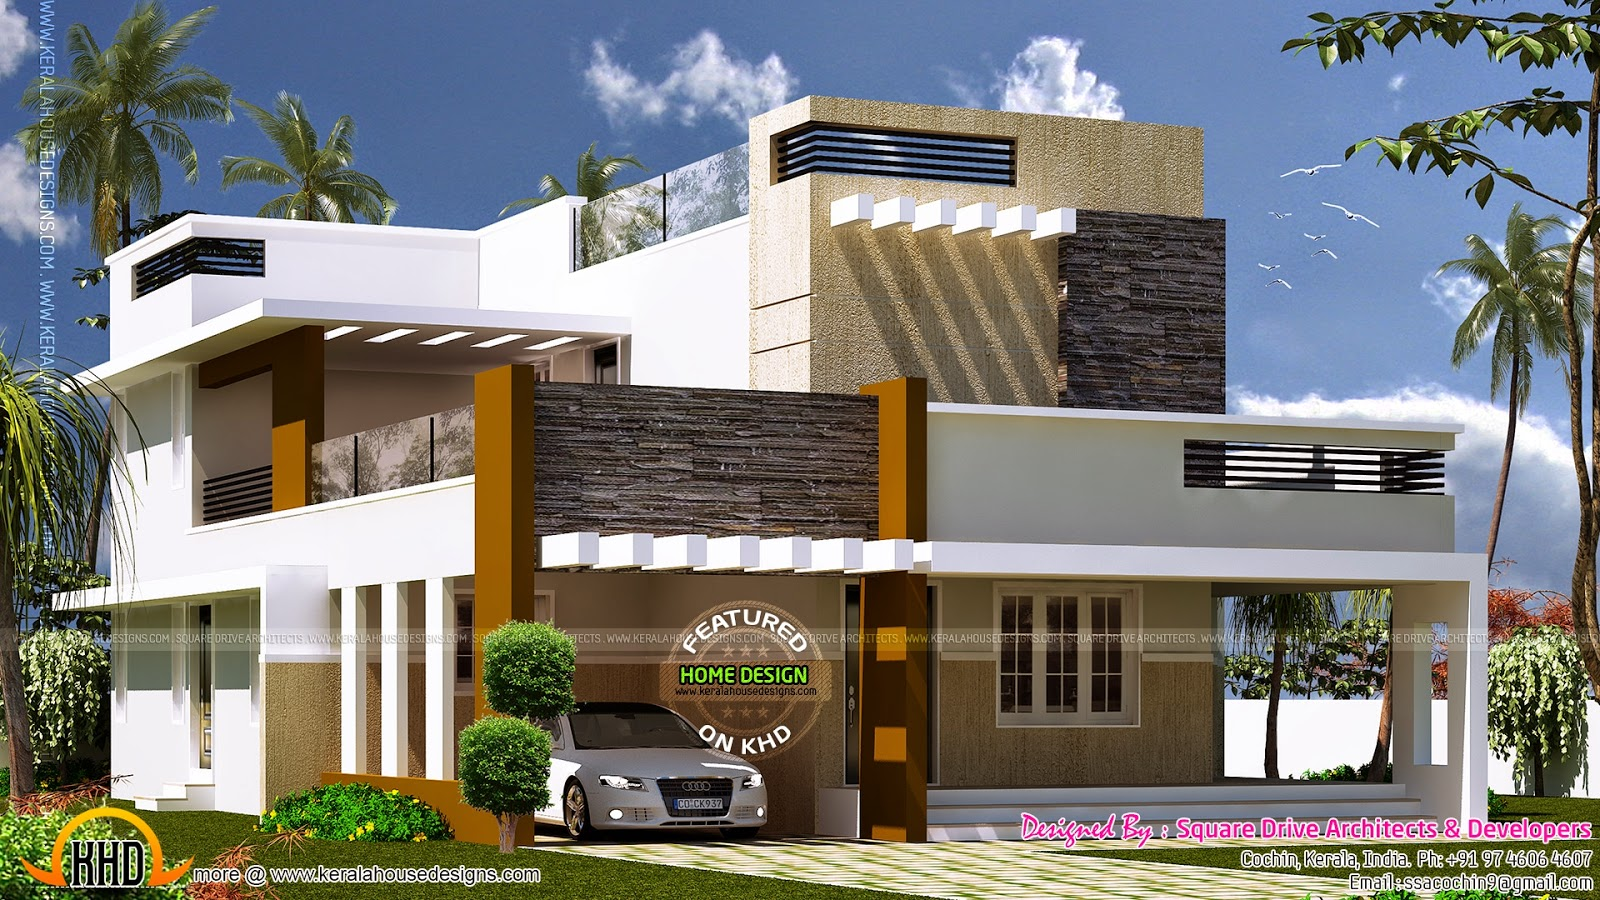 Duplex house plan india keralahousedesigns for Modern home design in india